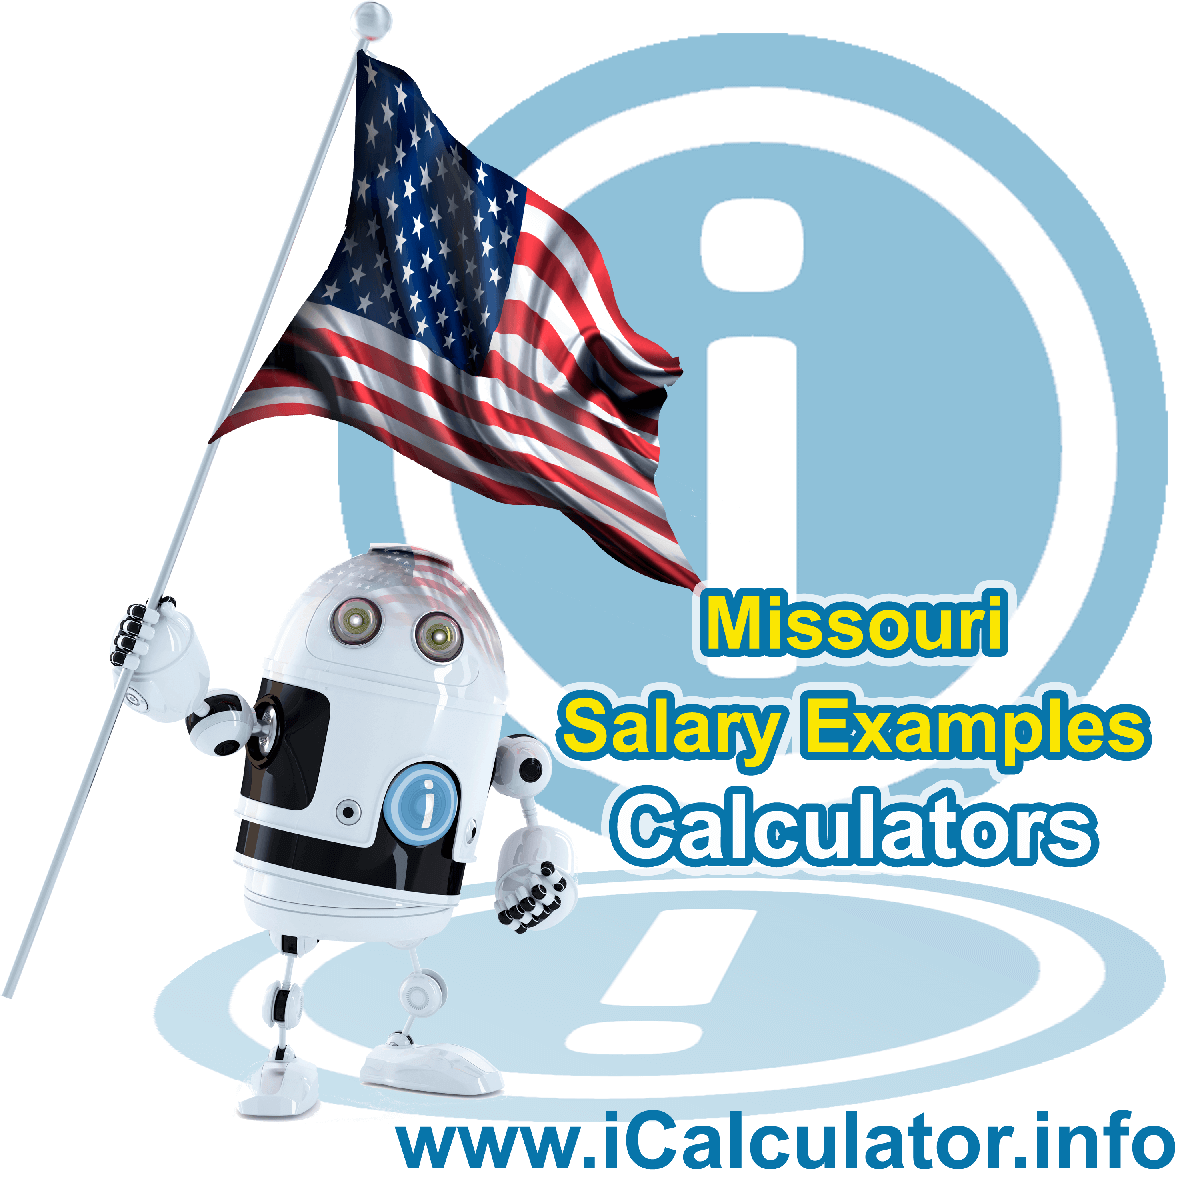 Missouri Salary Example for $10,000.00 in 2020 | iCalculator | $10,000.00 salary example for employee and employer paying Missouri State tincome taxes. Detailed salary after tax calculation including Missouri State Tax, Federal State Tax, Medicare Deductions, Social Security, Capital Gains and other income tax and salary deductions complete with supporting Missouri state tax tables